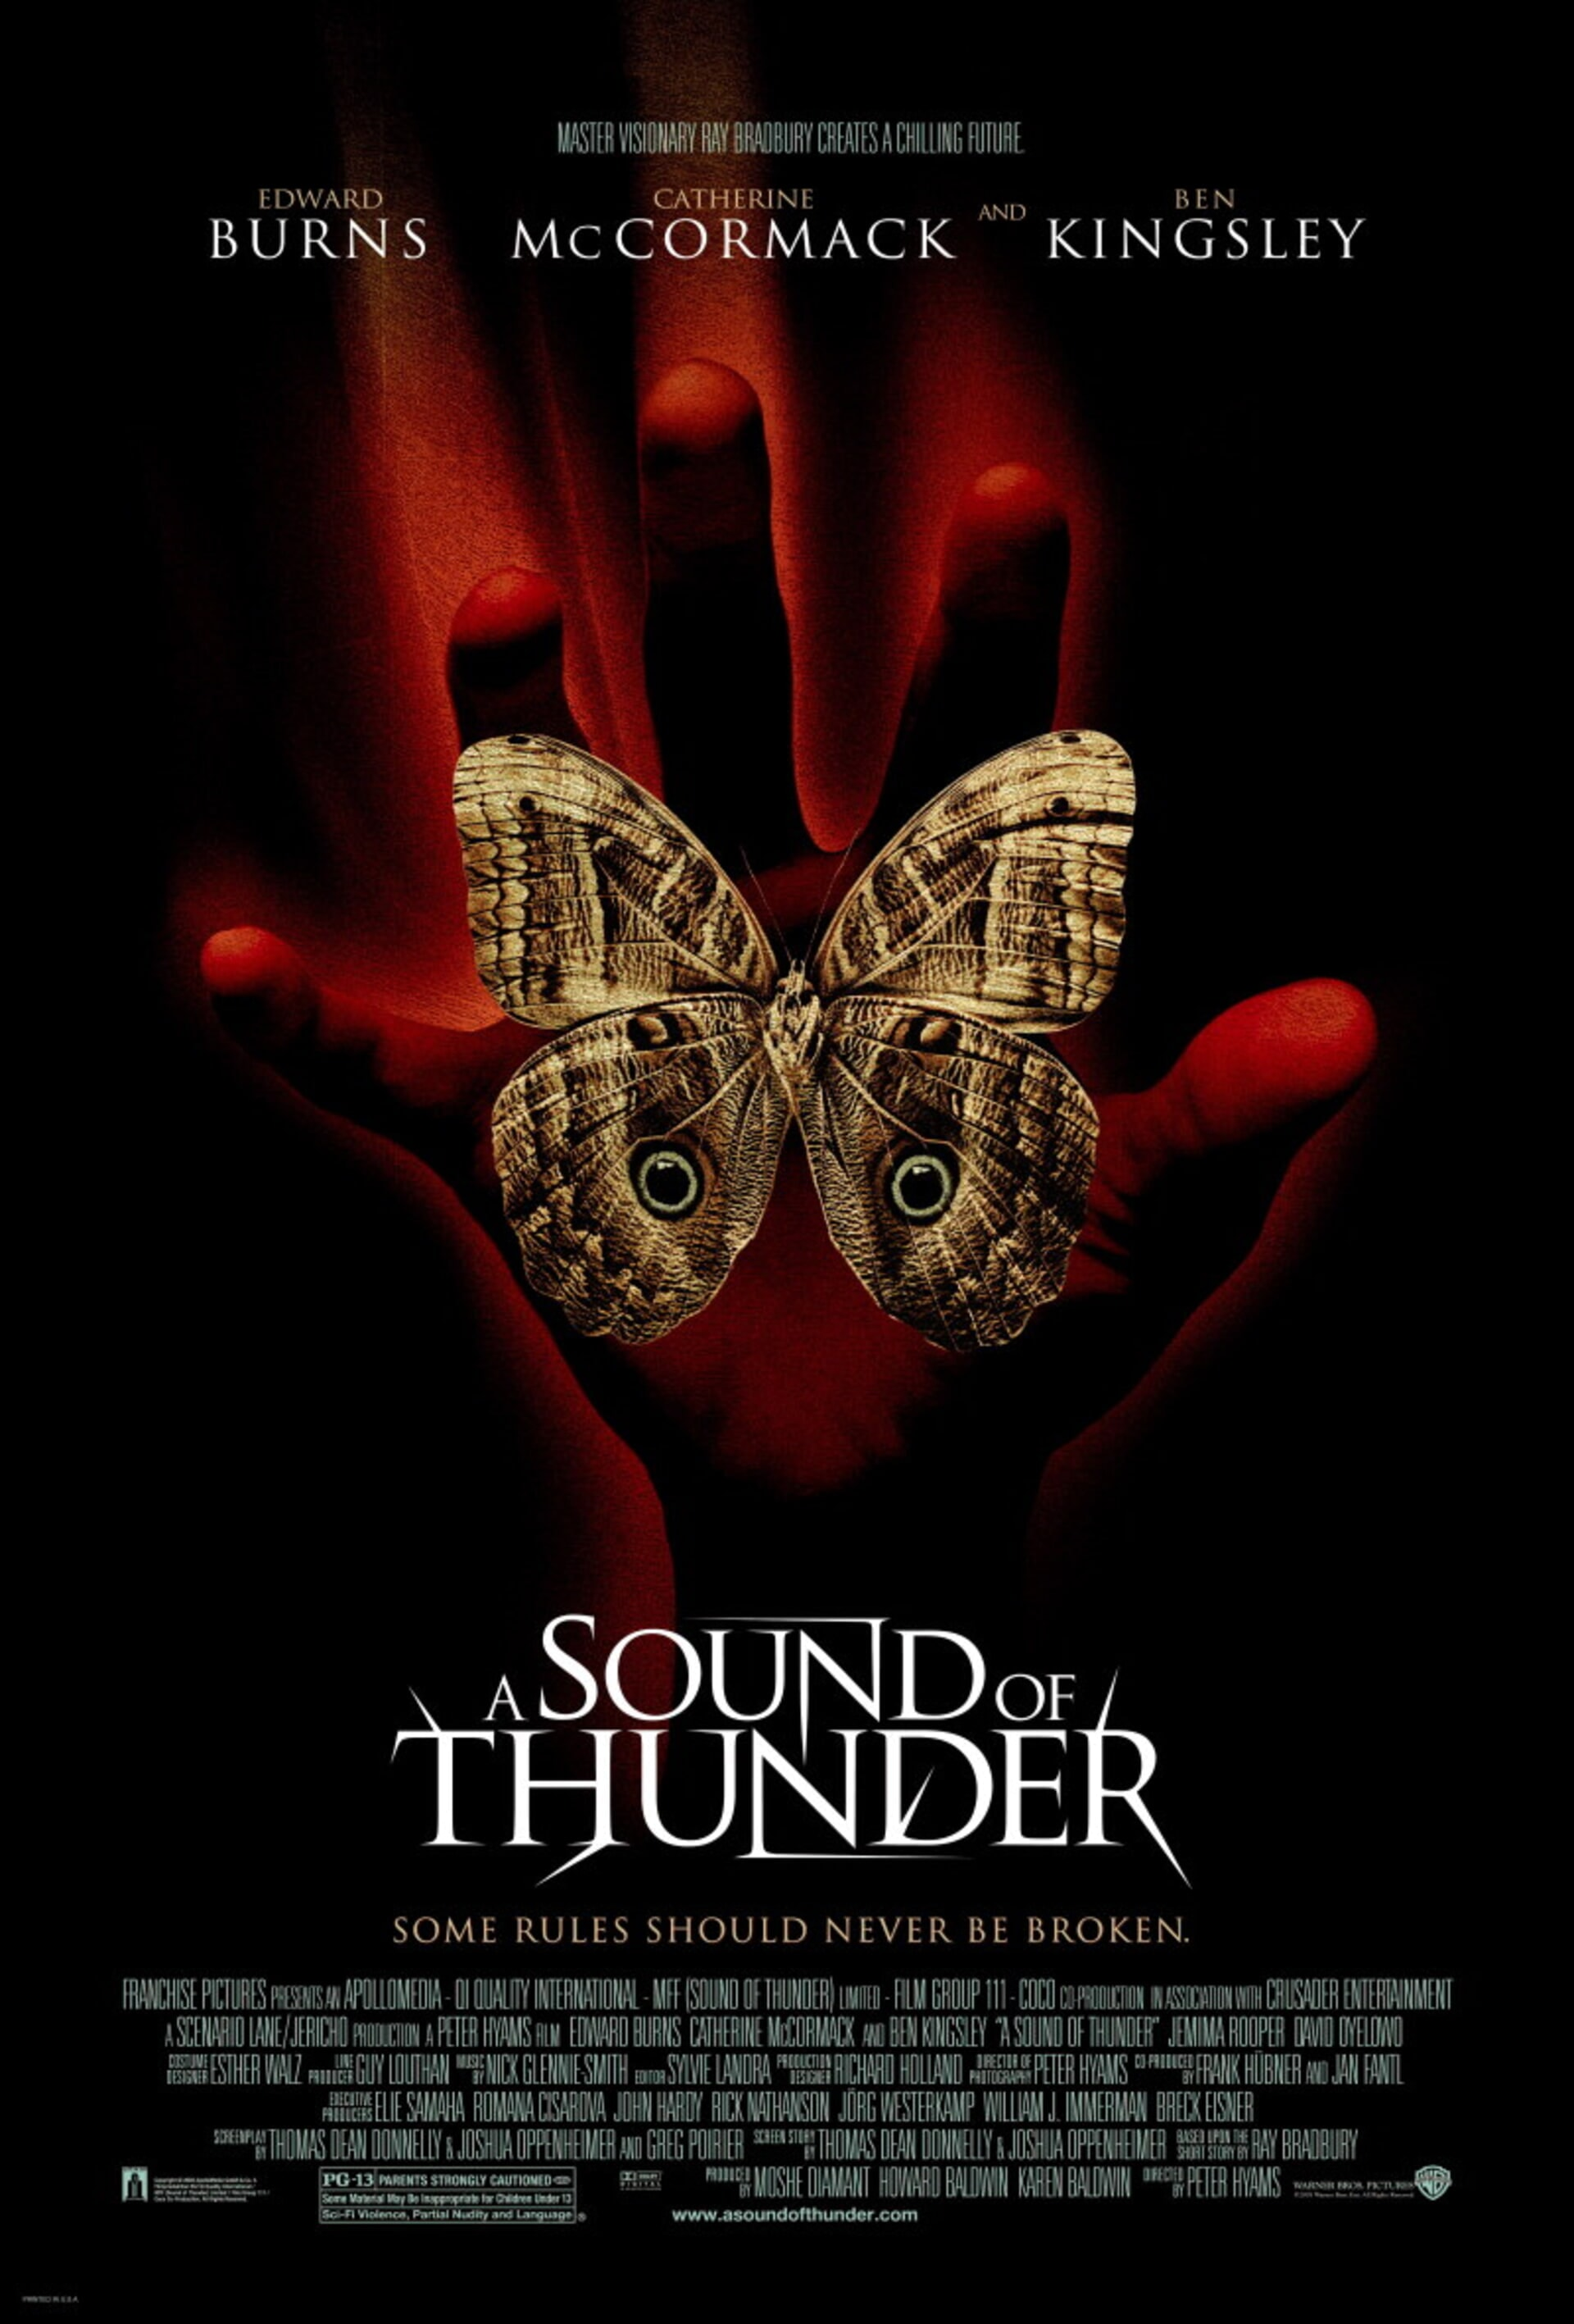 A Sound of Thunder - Poster 2